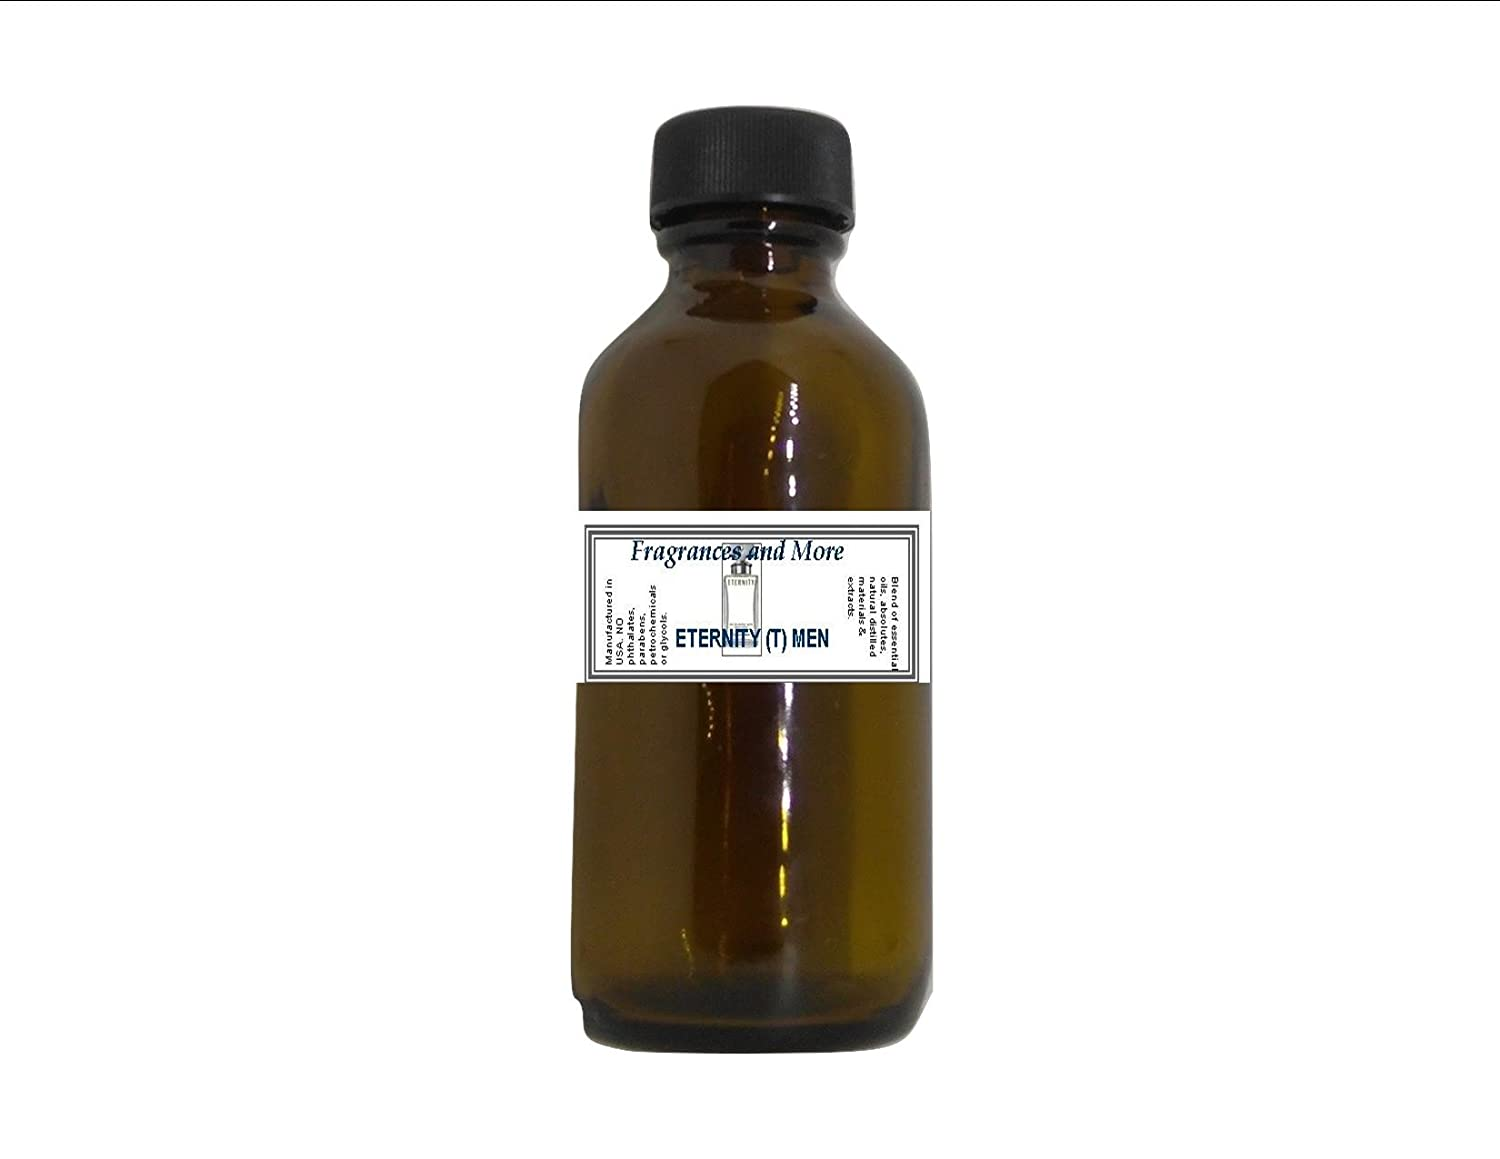 Eternity Men Type Fragrance Oil-2 oz Scented Oil for Candle Making-Soap Making- Home & Office Diffuser- Hair & Body Products Fragrances And More